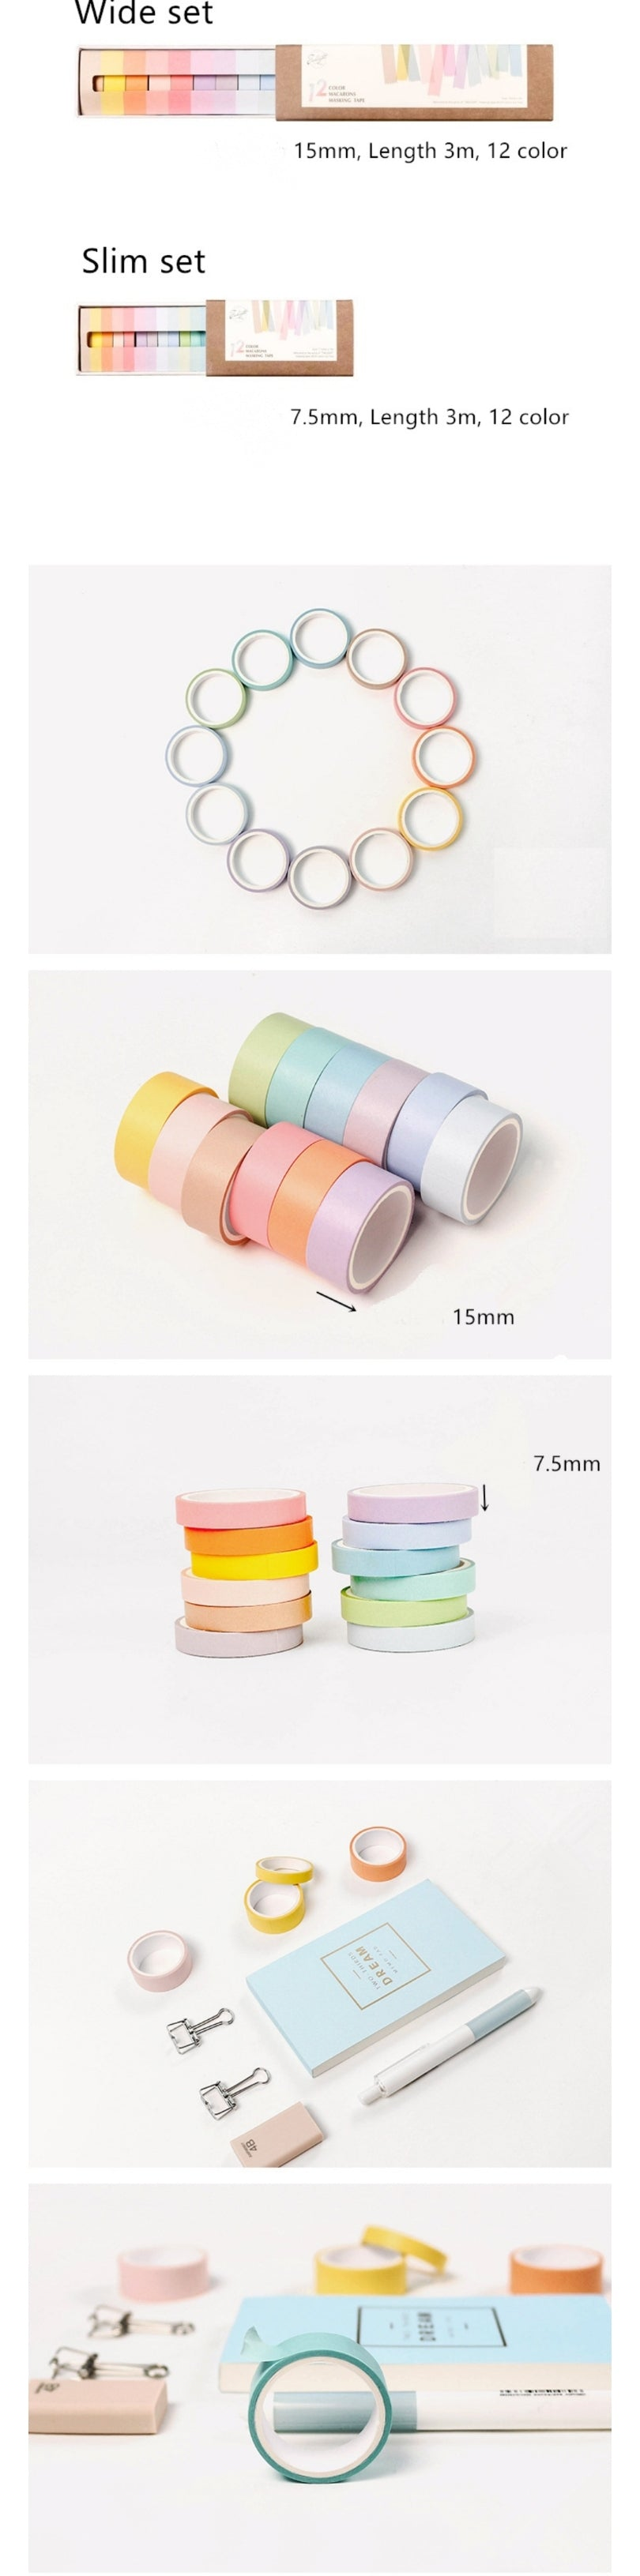 Set of 12: Macaron Washi Tape - Otrio Stationery - Pastel Collection